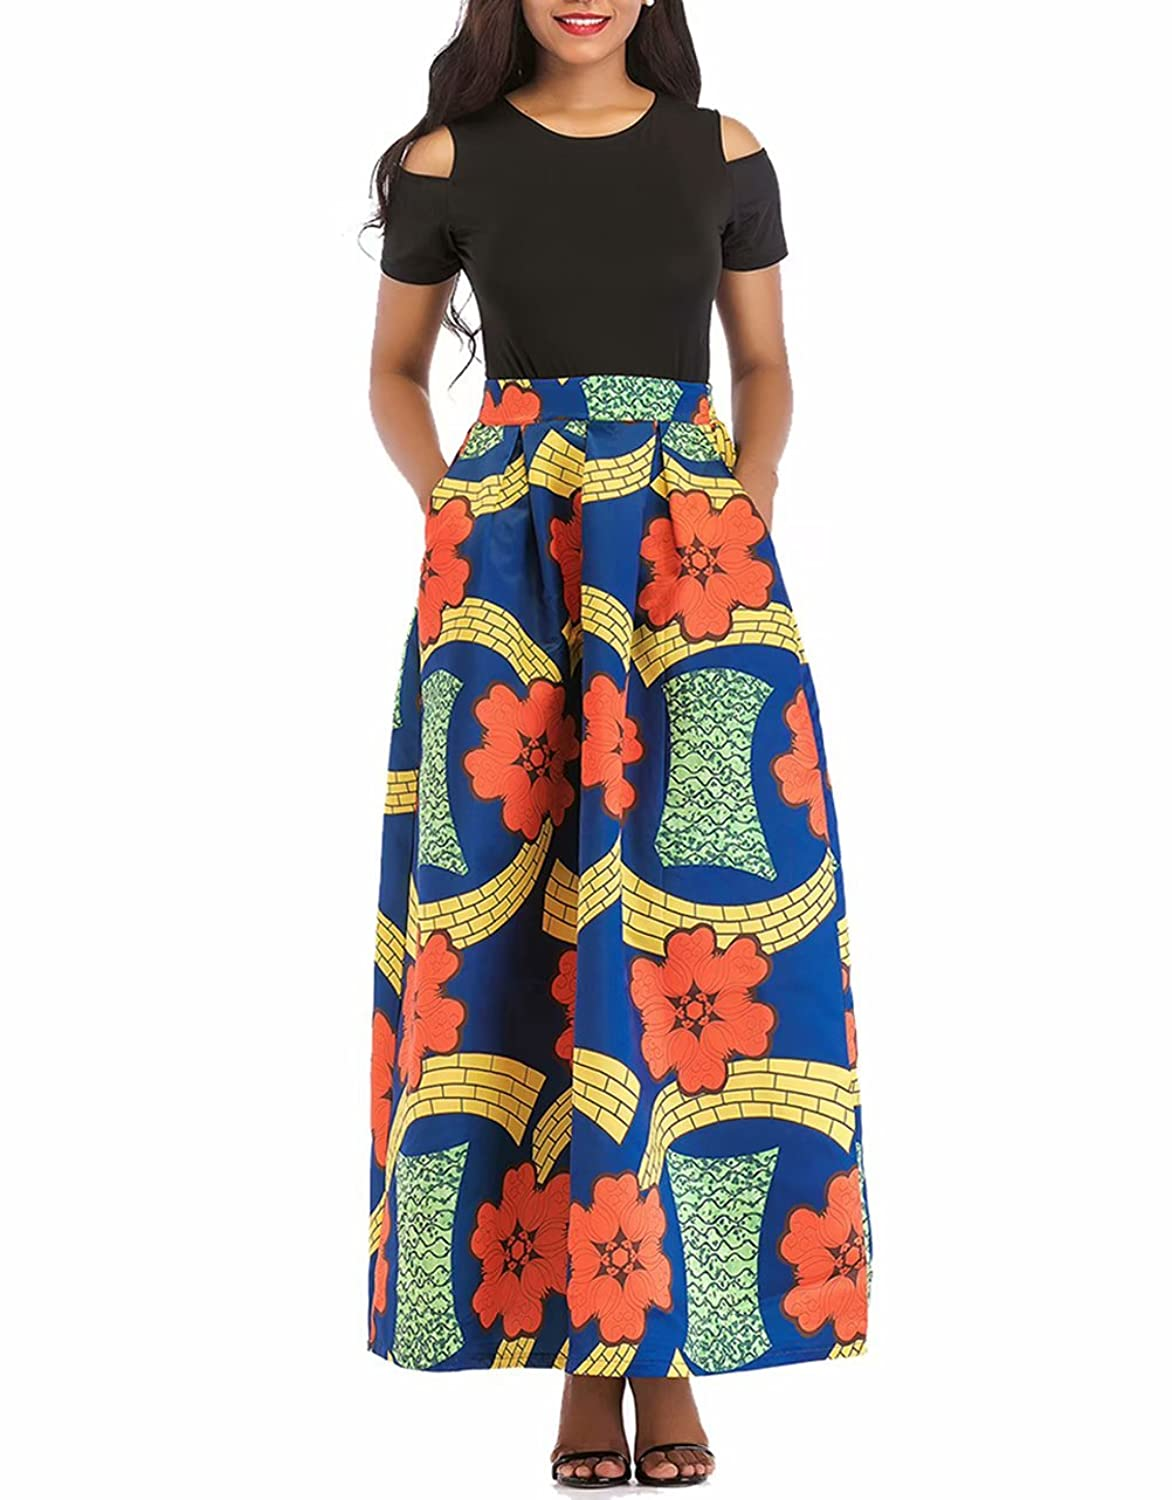 c23b6ab5c ... Shoulder,Short Sleeve/Long Sleeve,Black Tops,Graphic African Floral  Print,Elastic Waistband,With Pockets,A Line Long Skirt,2 Piece Dress Set  Outfit